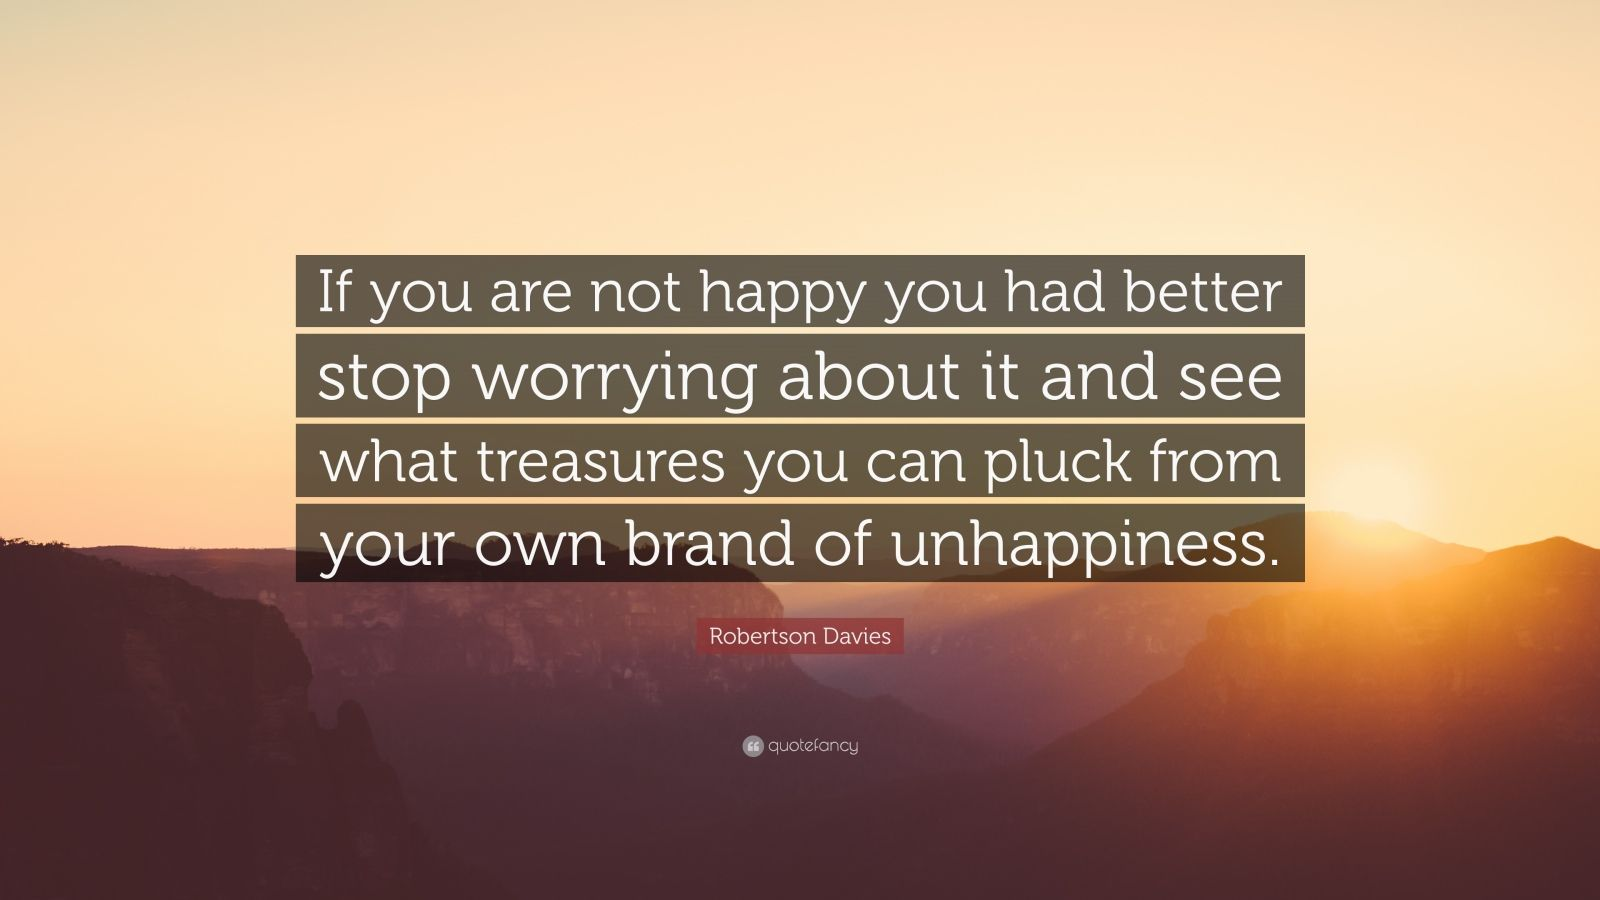 """Robertson Davies Quote: """"If you are not happy you had better stop worrying about it and see what treasures you can pluck from your own brand of unhappiness."""""""